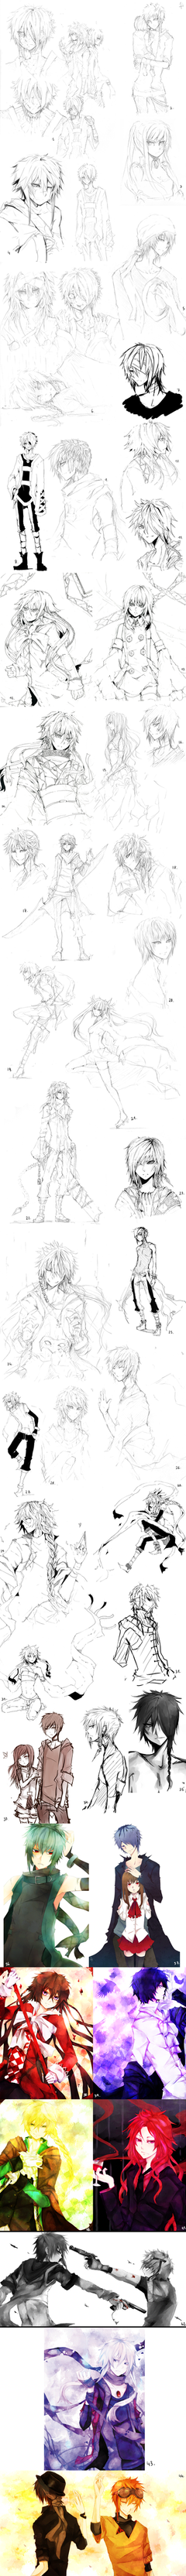 Some drawings 8 by Eyliant